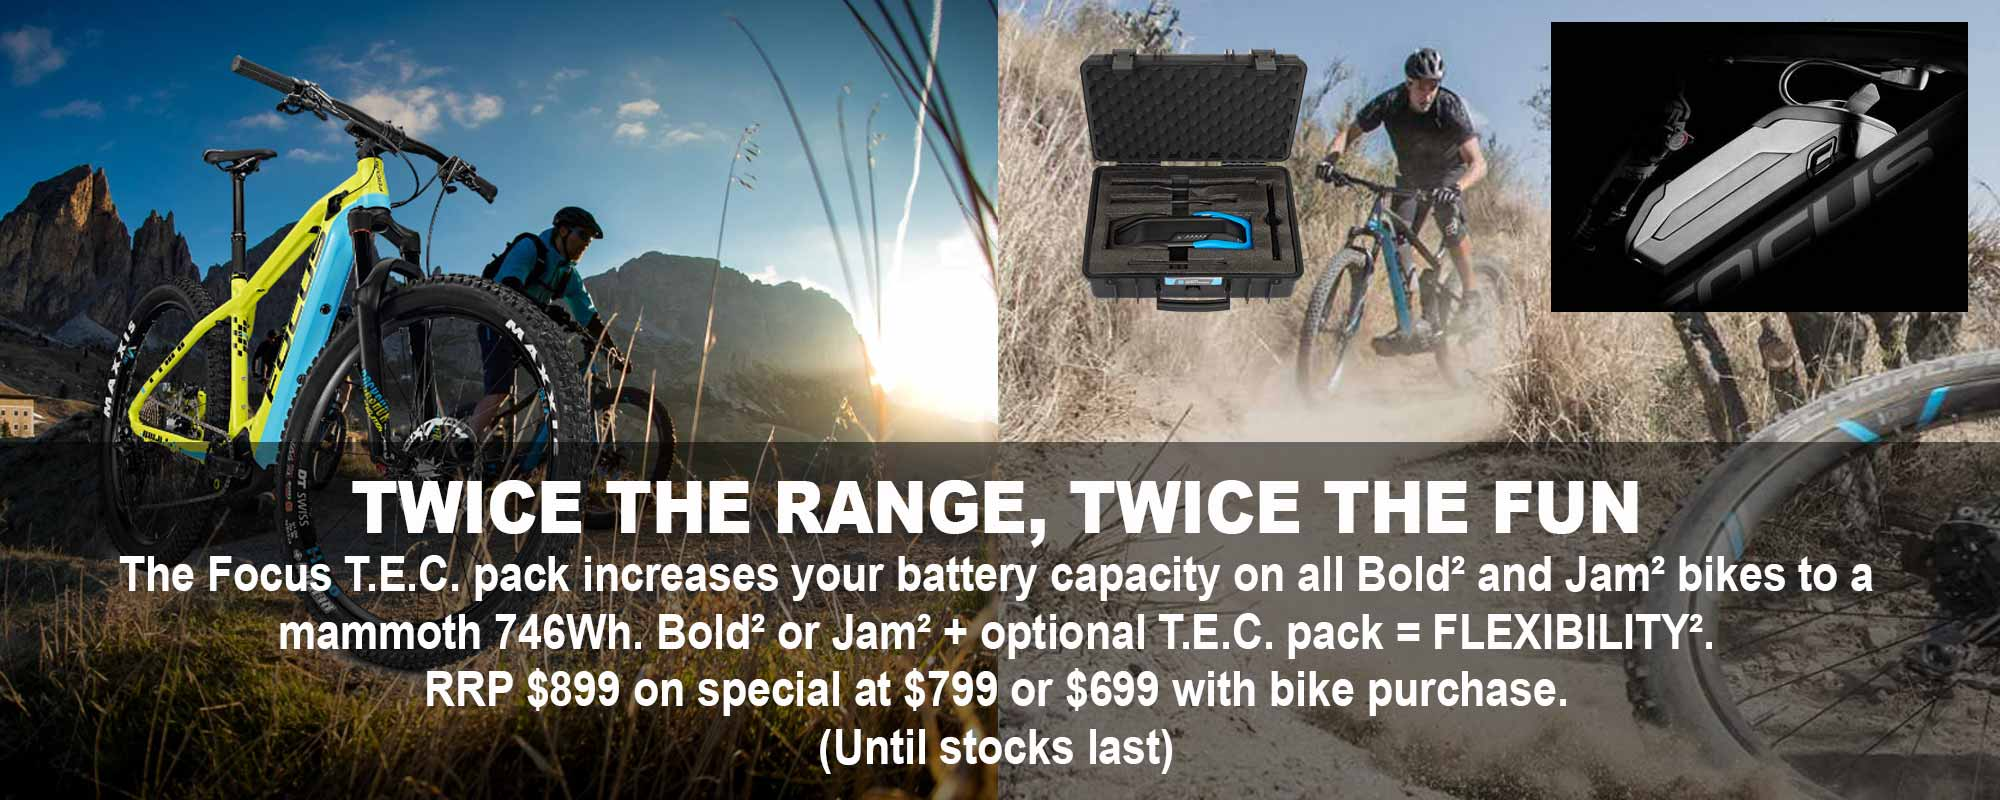 Focus TEC pack special deal|Electric Bikes Perth